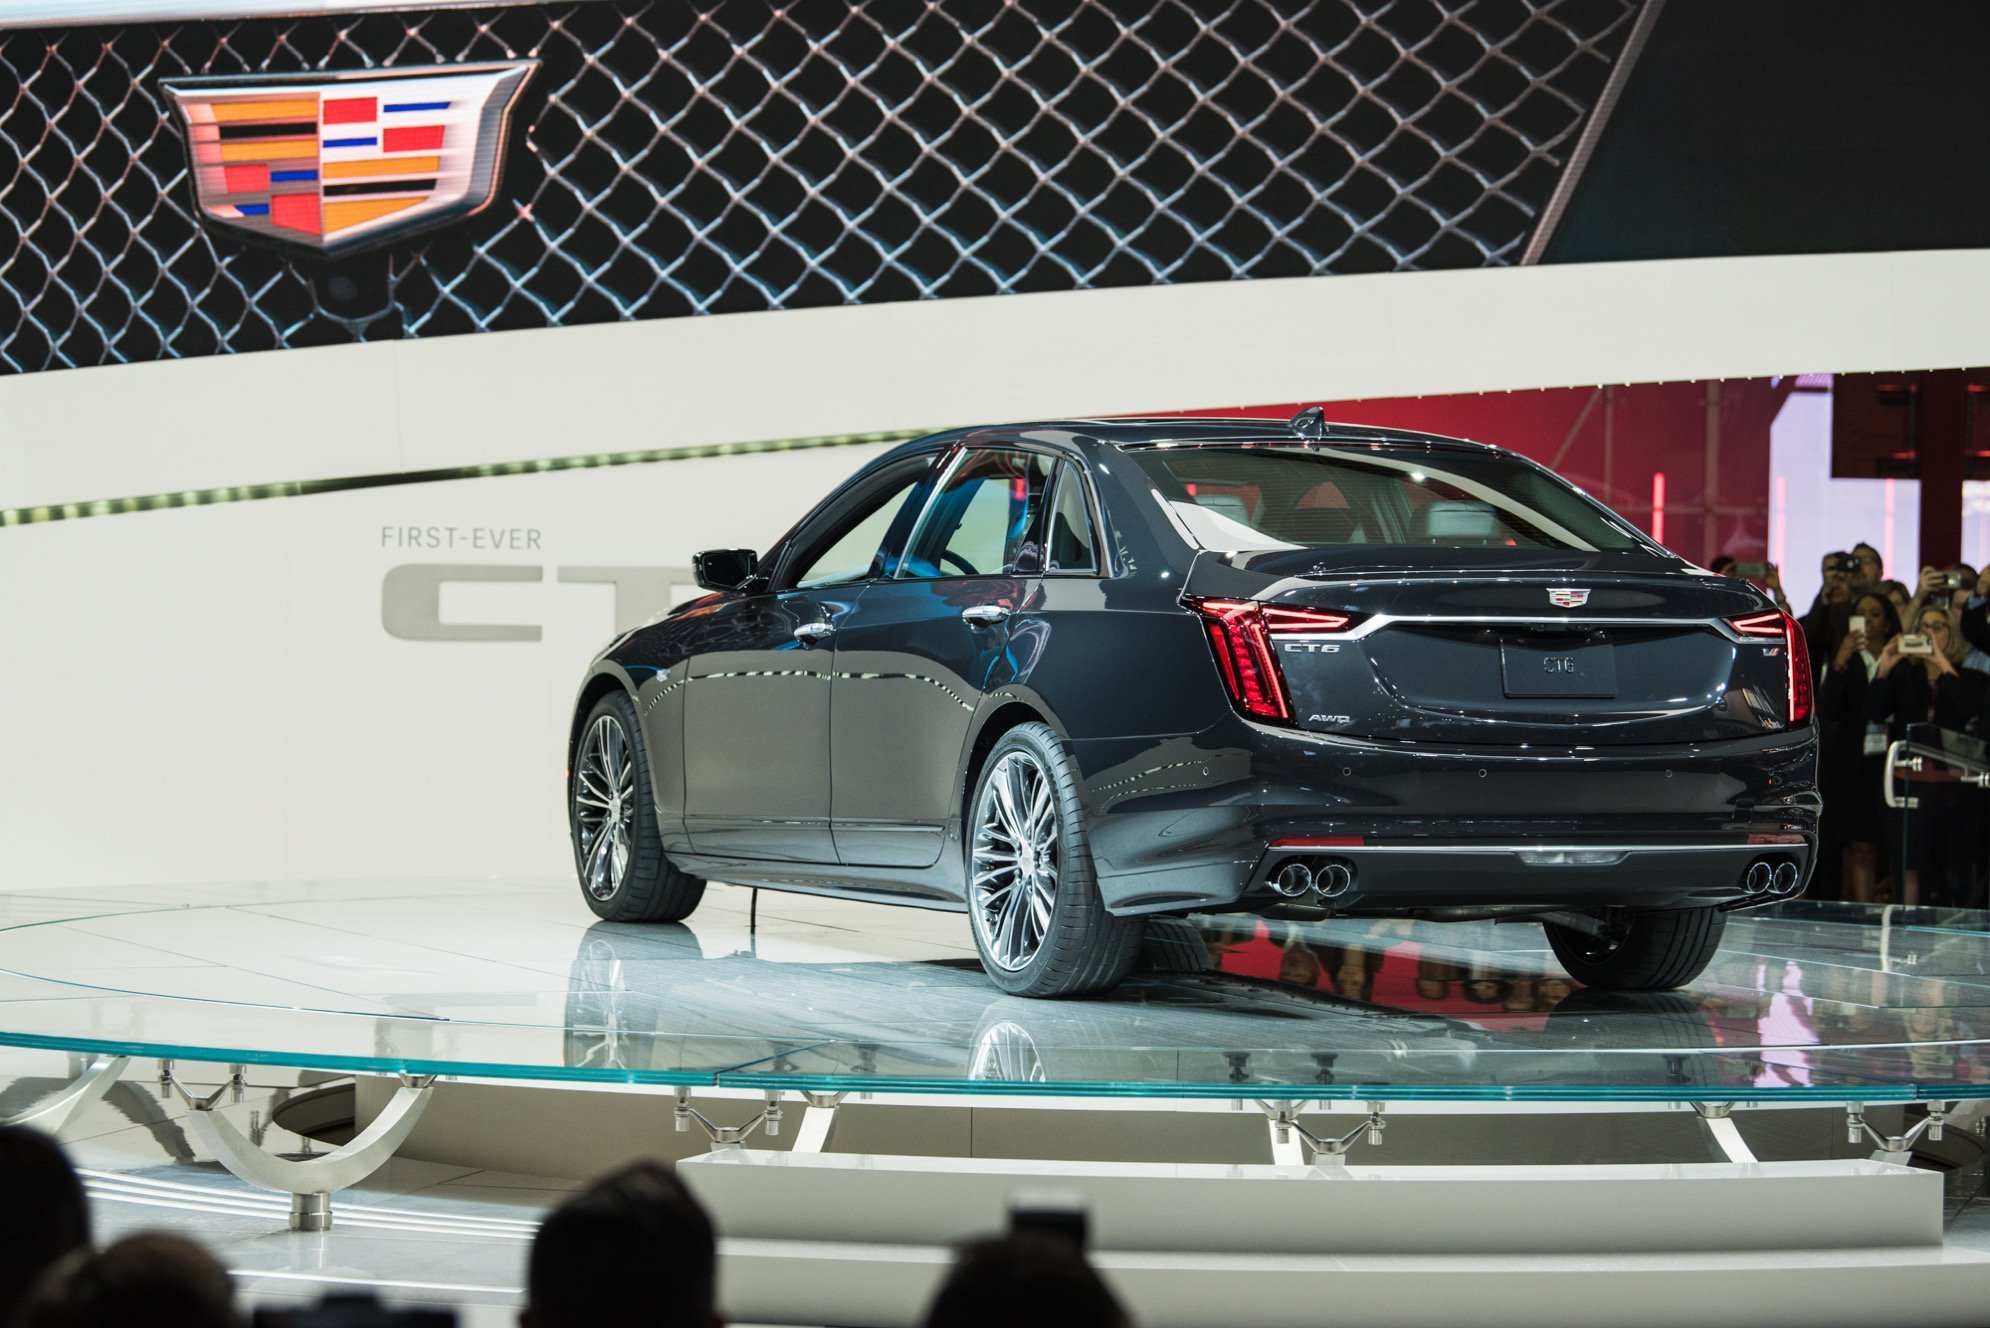 43 New New Cadillac Ct6 V Sport 2019 Picture Release Date And Review Performance and New Engine with New Cadillac Ct6 V Sport 2019 Picture Release Date And Review